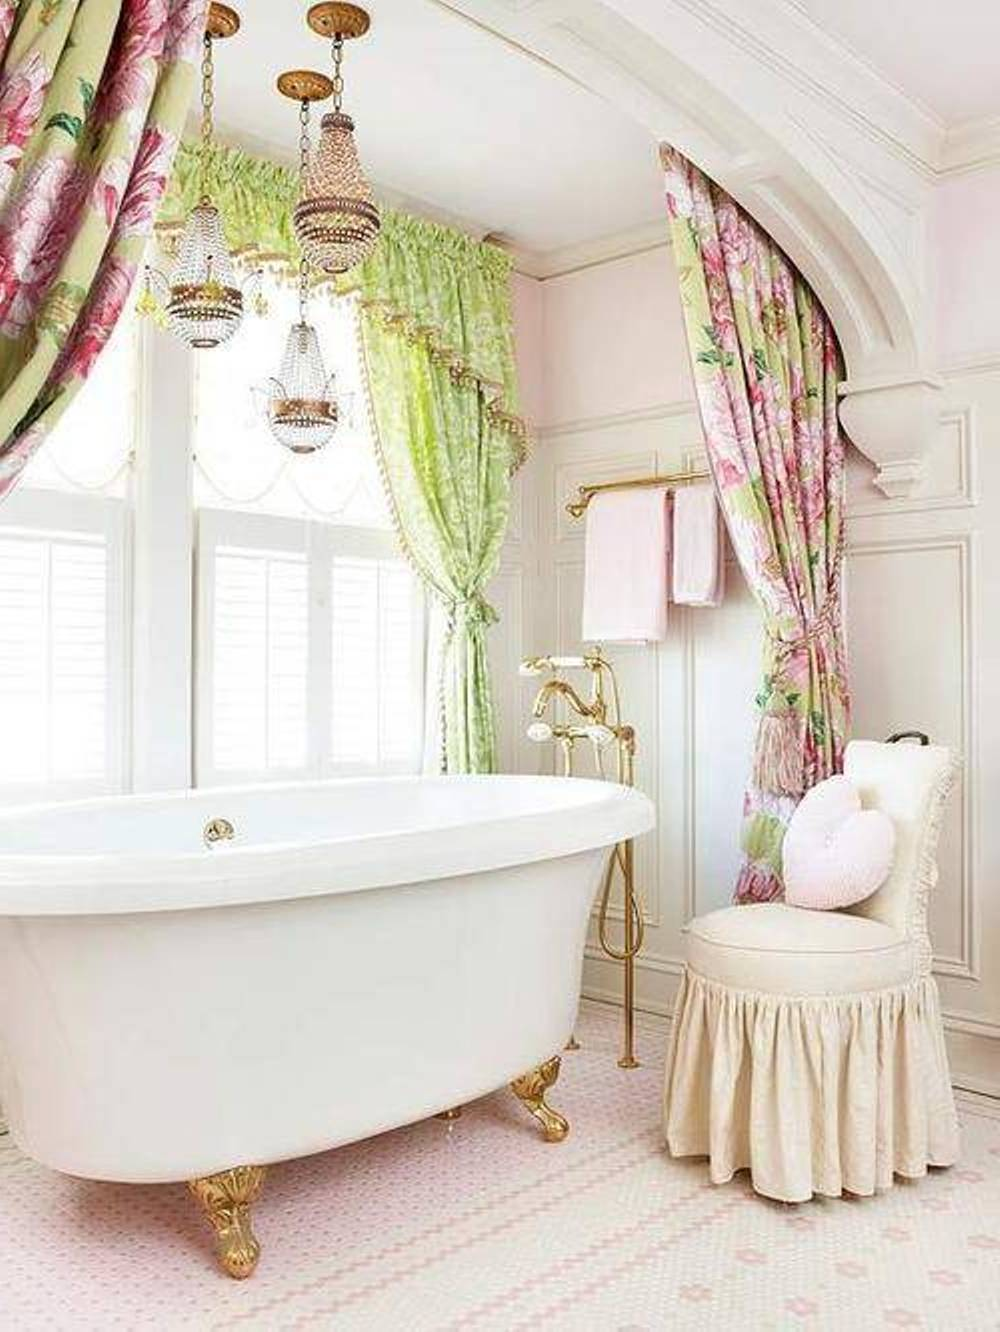 30 shabby chic bathroom design ideas to get inspired for Lampe style shabby chic